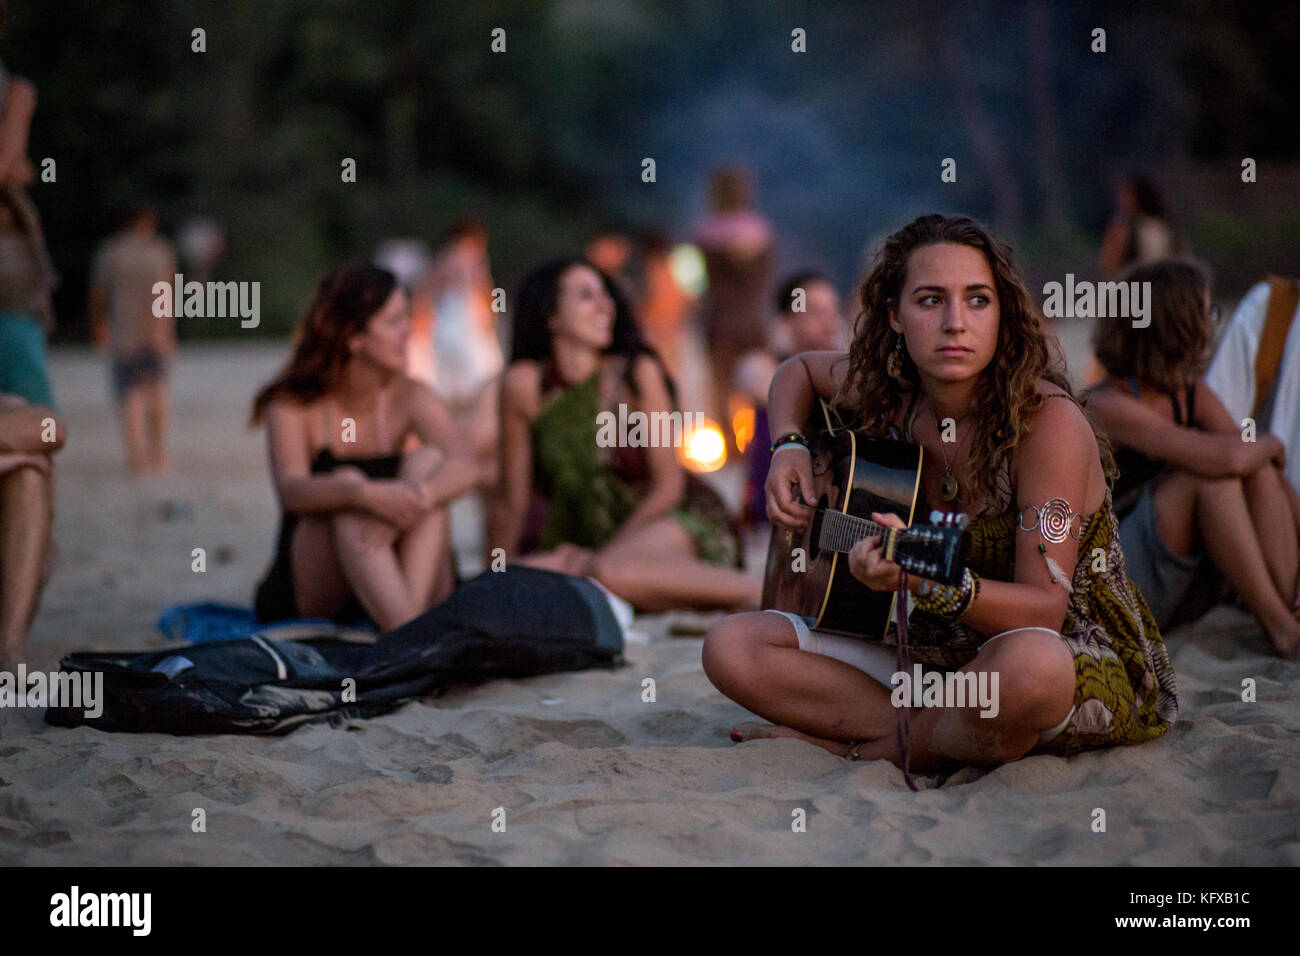 Girl sitting in the sunset on a crowded beach with a guitar. - Stock Image